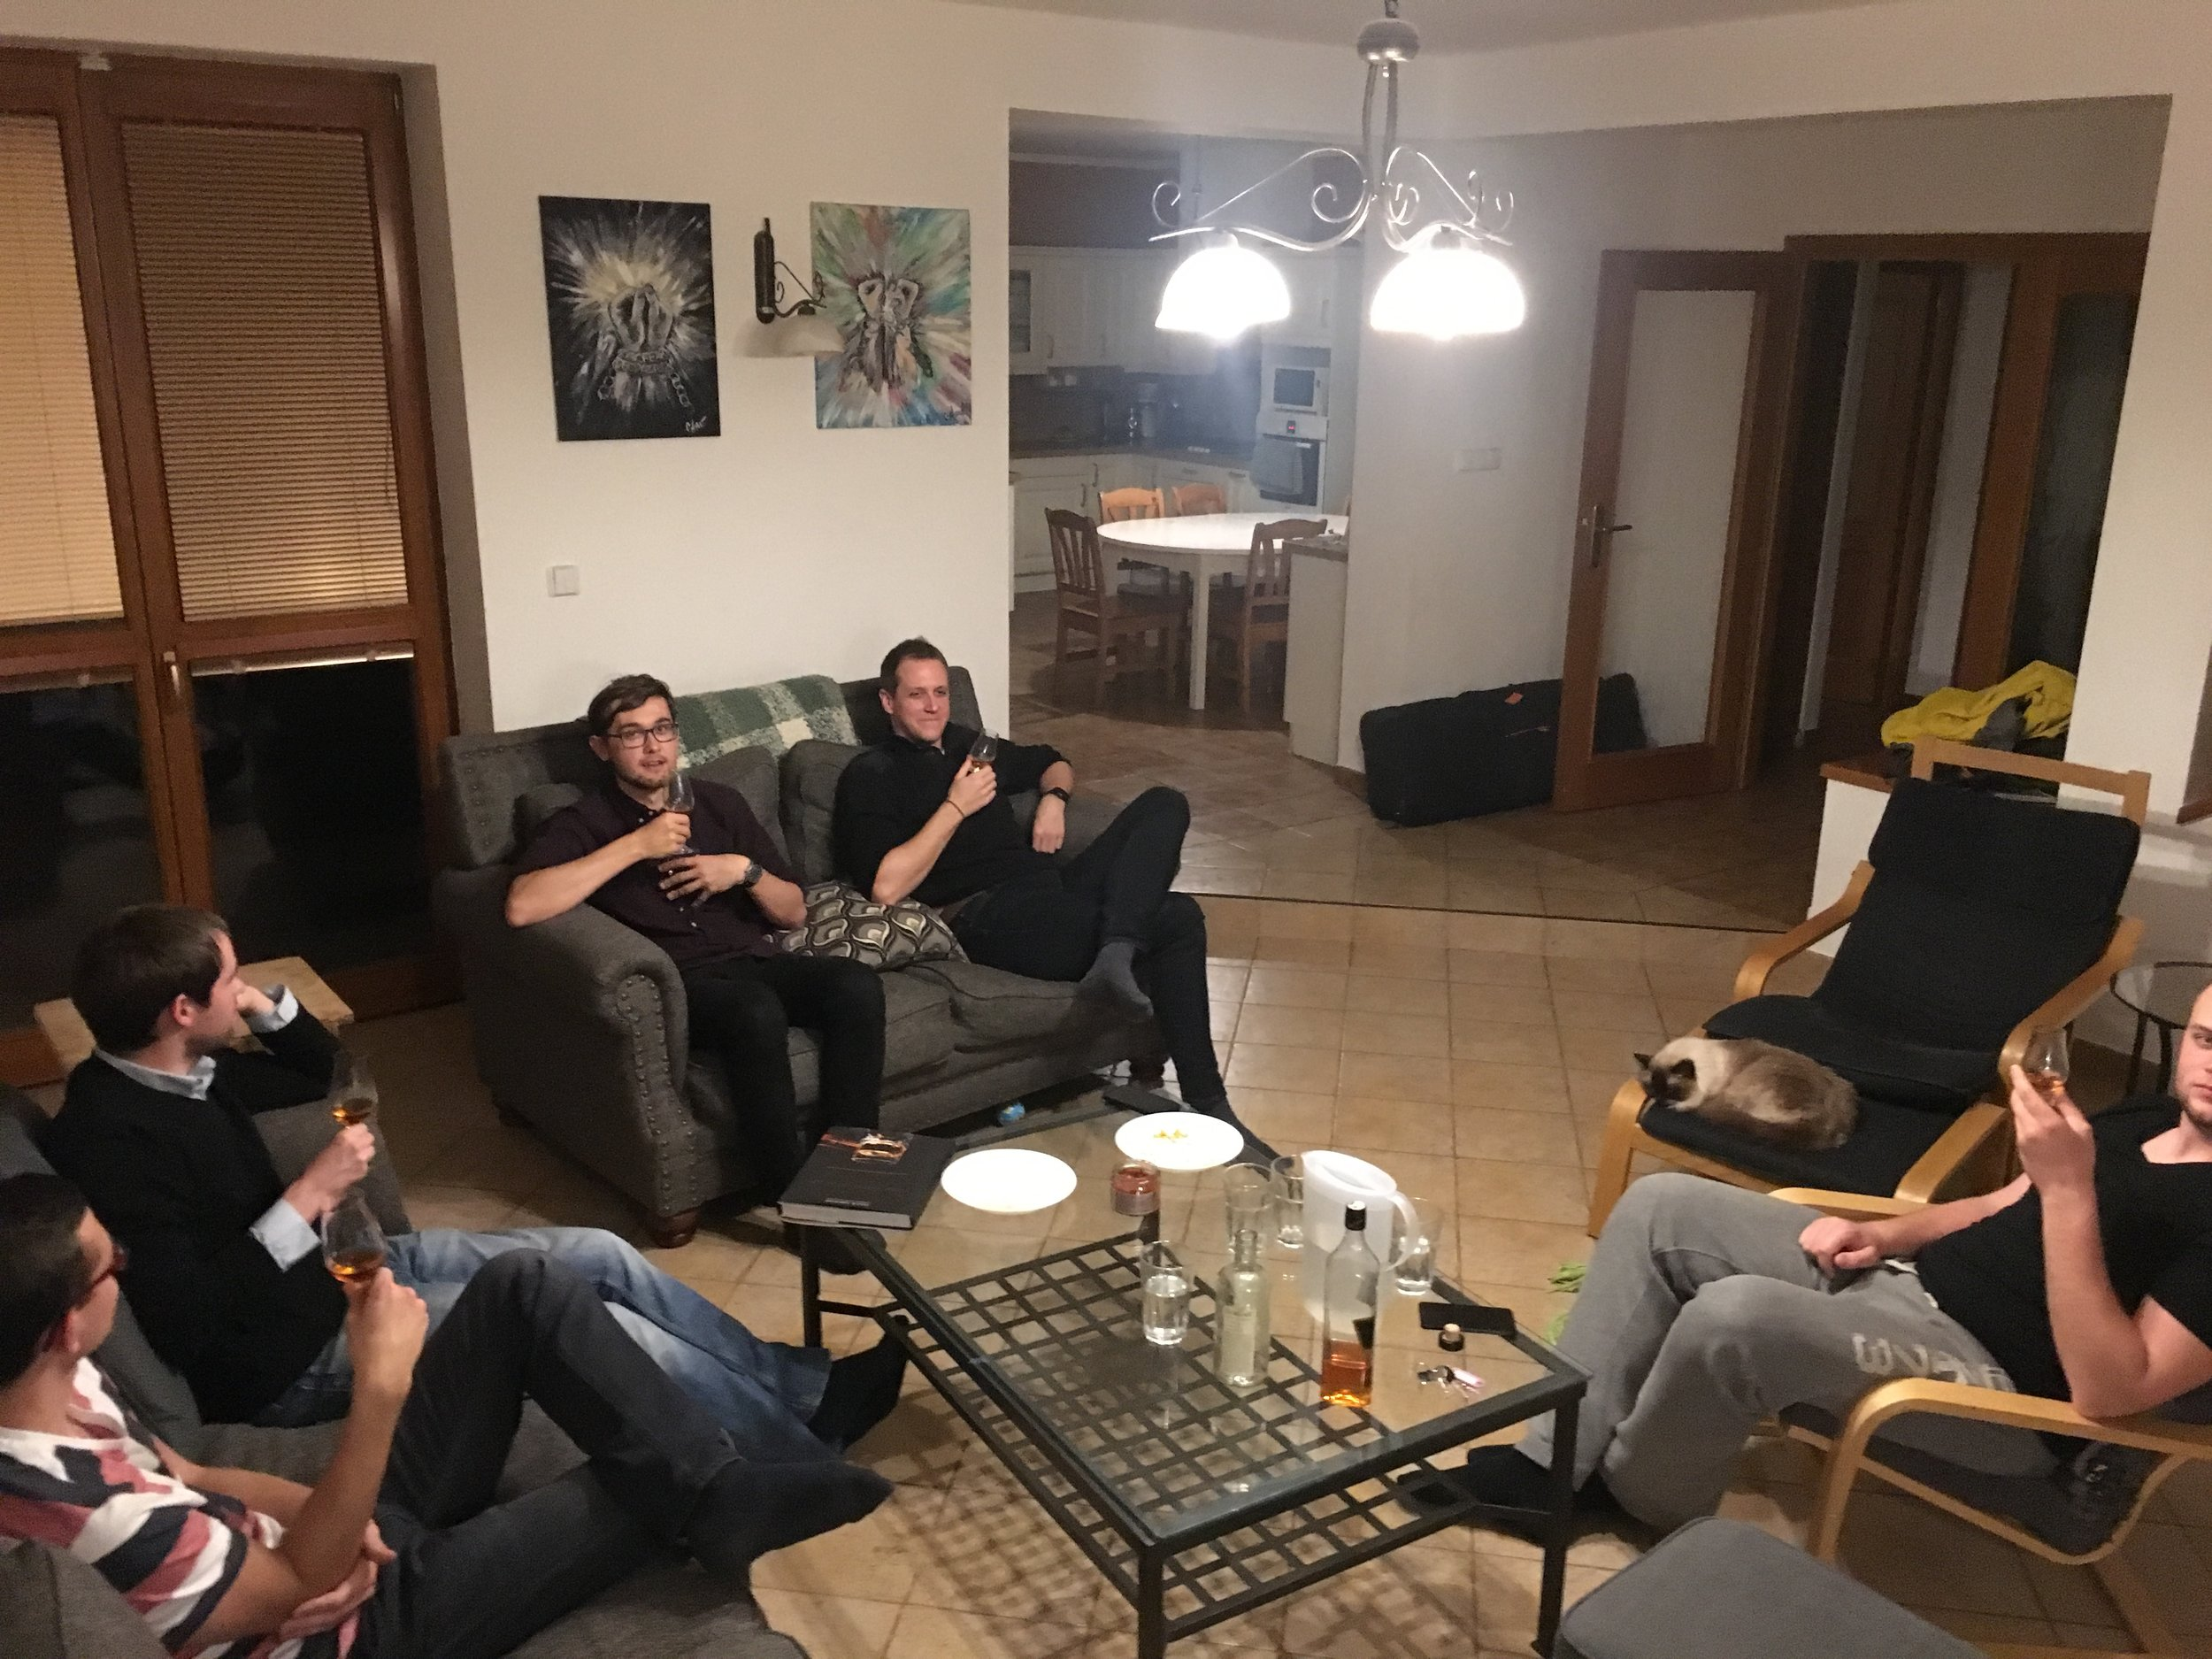 We started a whisky tasting group for men a few months ago. Here we were drinking history (and possibly one of the last bottles) of the 1992 Czechoslovakian Gold Cock.